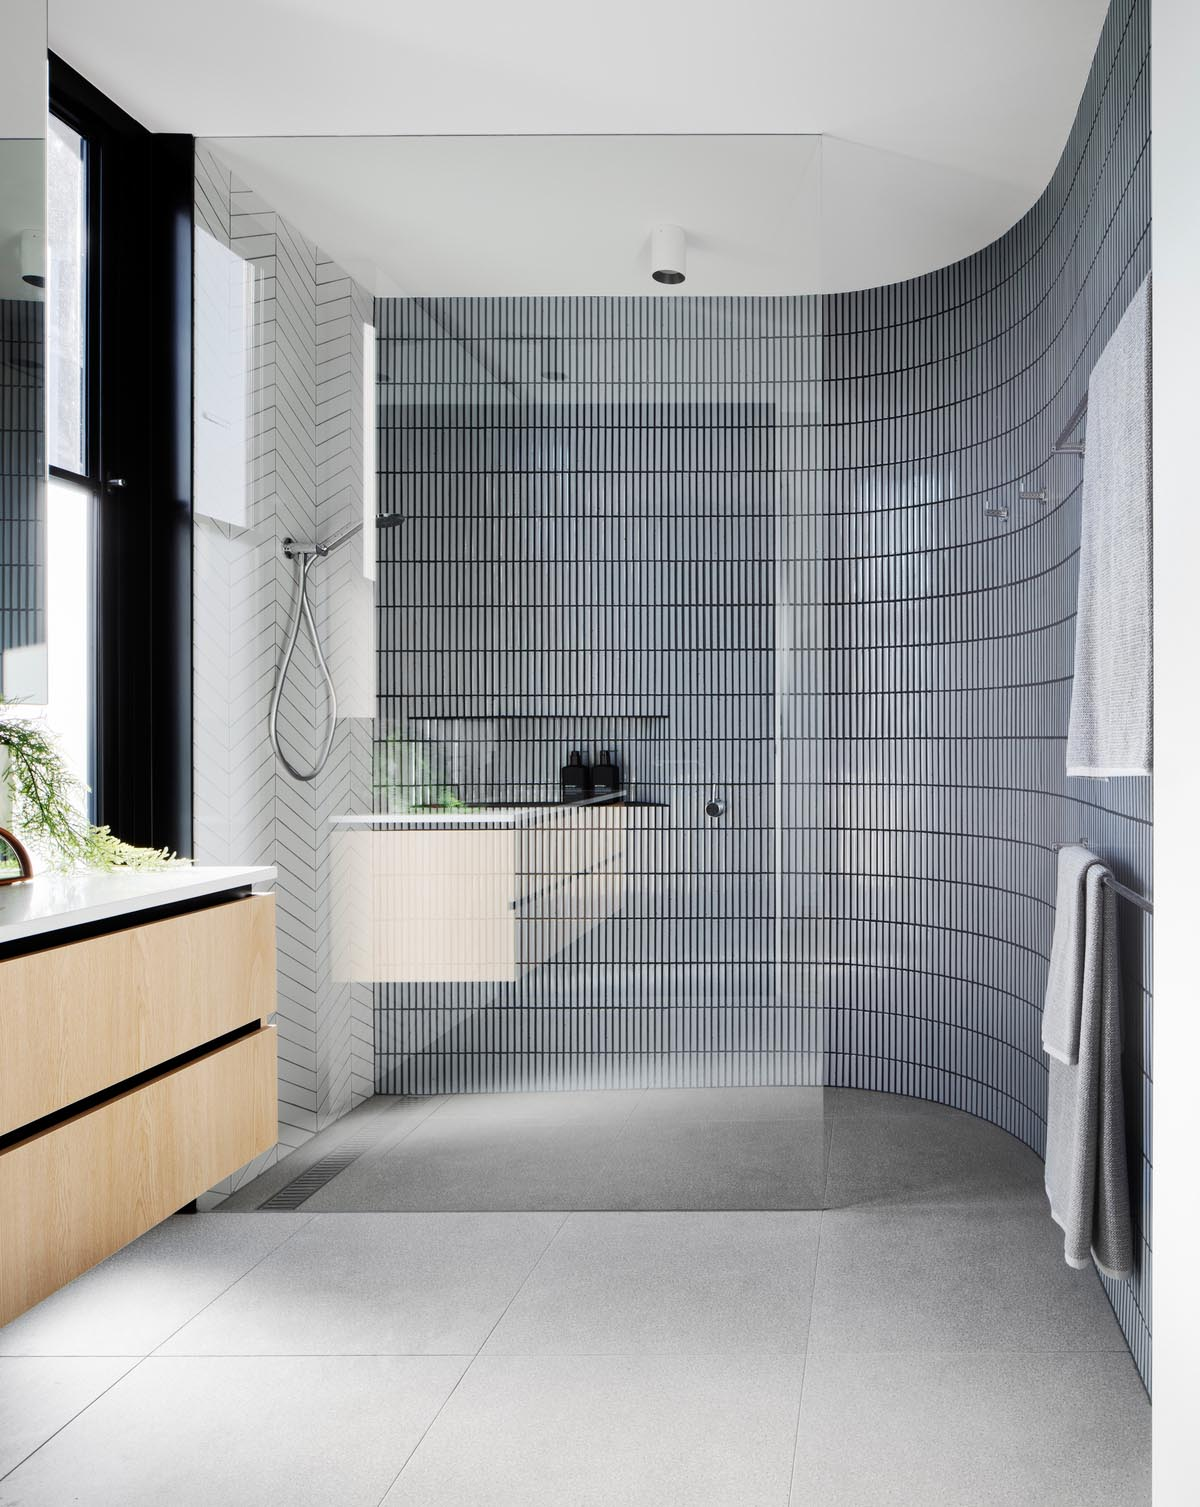 In this modern bathroom, there's two types of tiles that cover the walls in the shower, with a white tile in a chevron pattern, and a small gray tile laid in a vertical pattern.